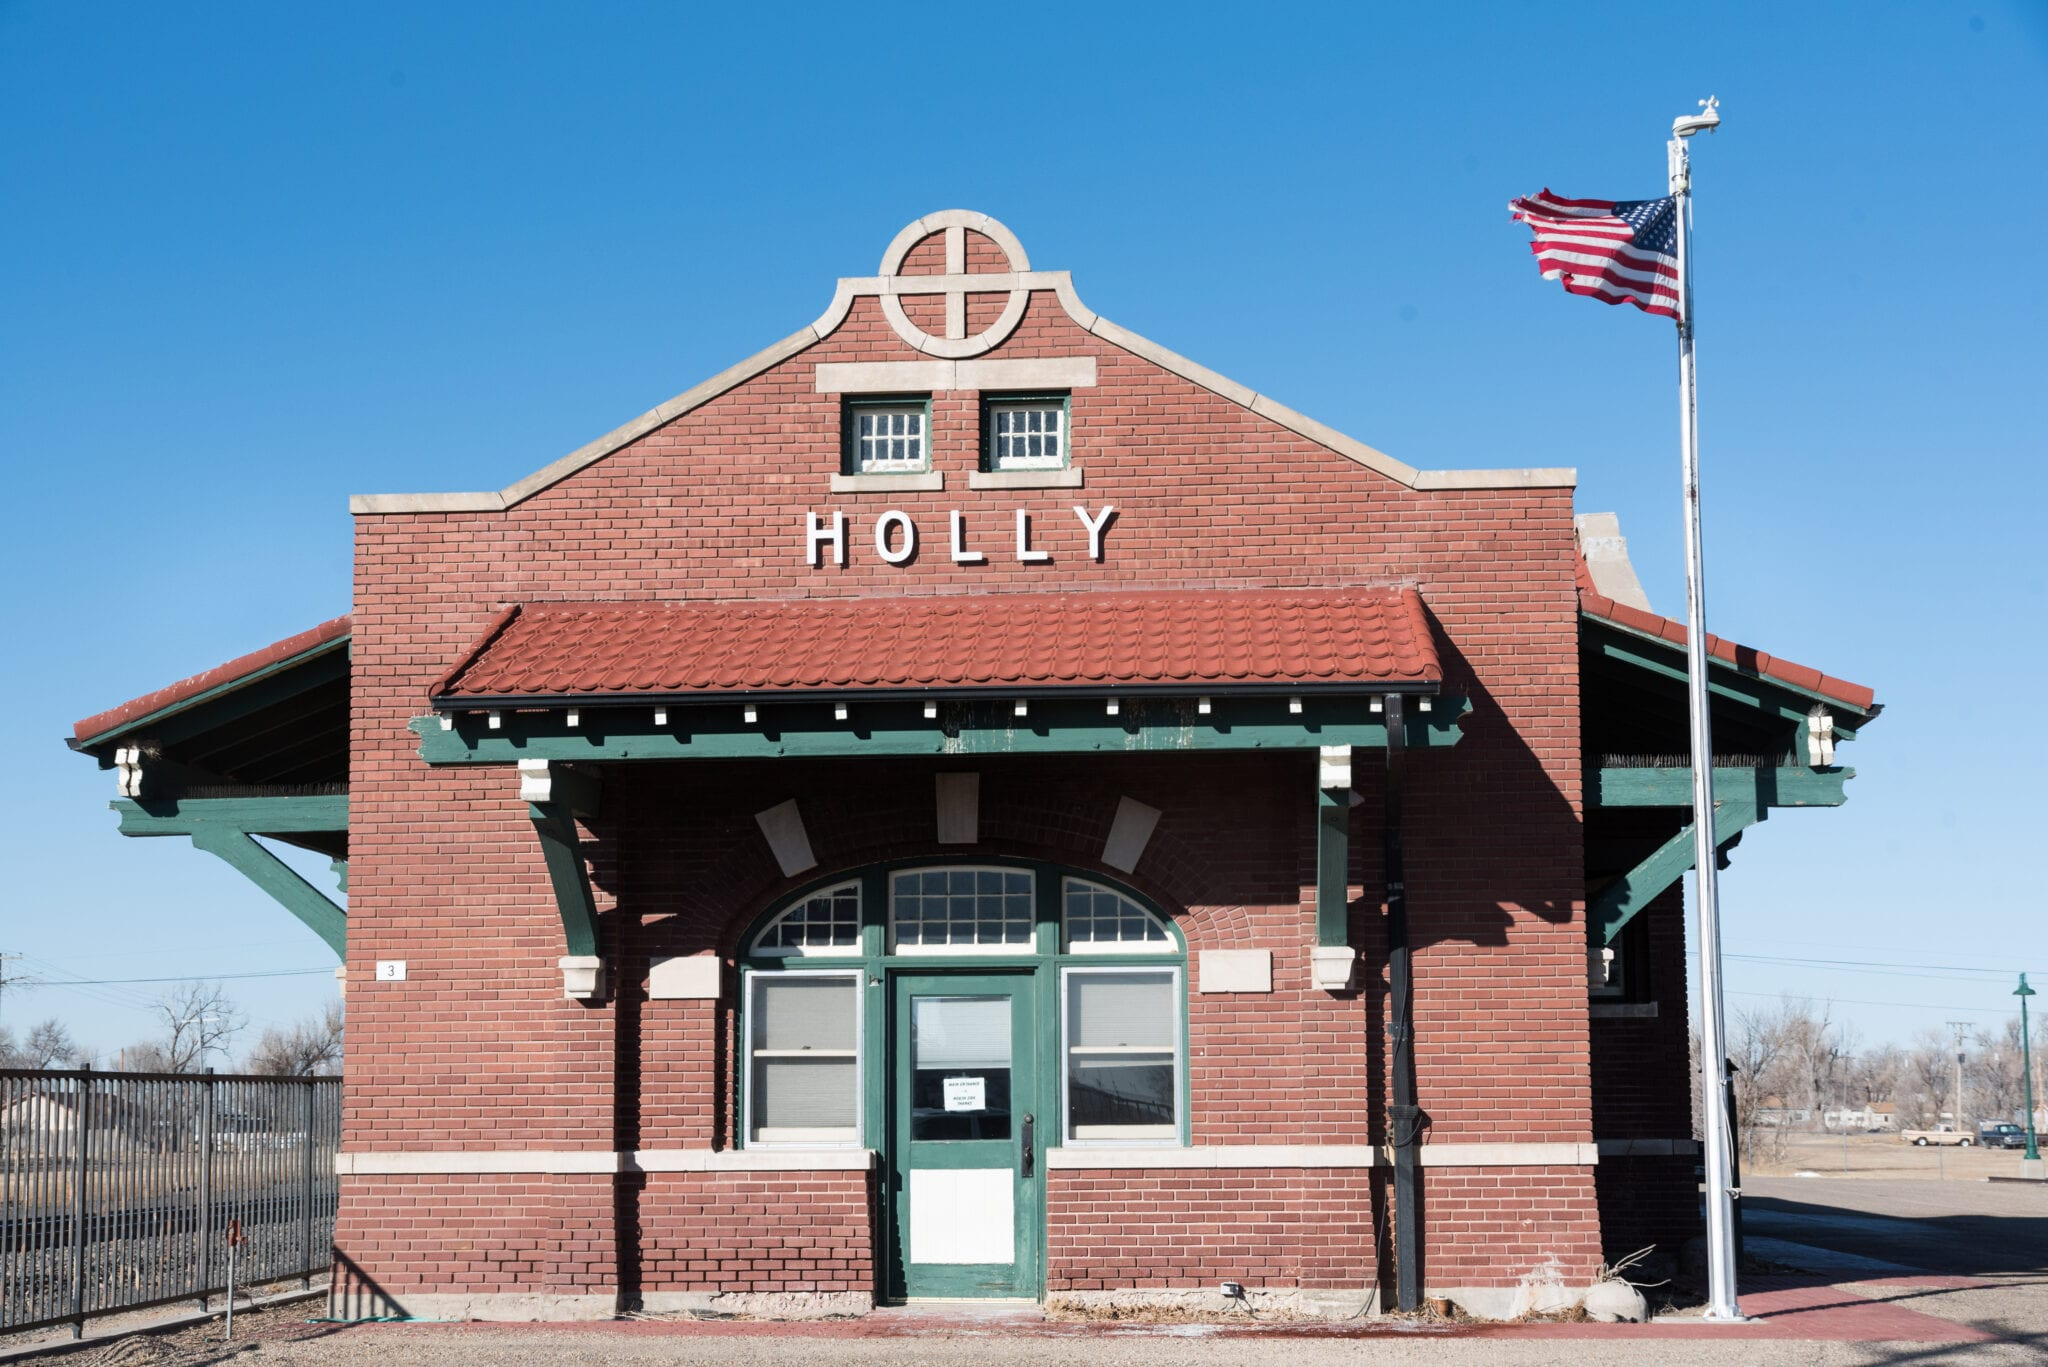 image of holly train depot